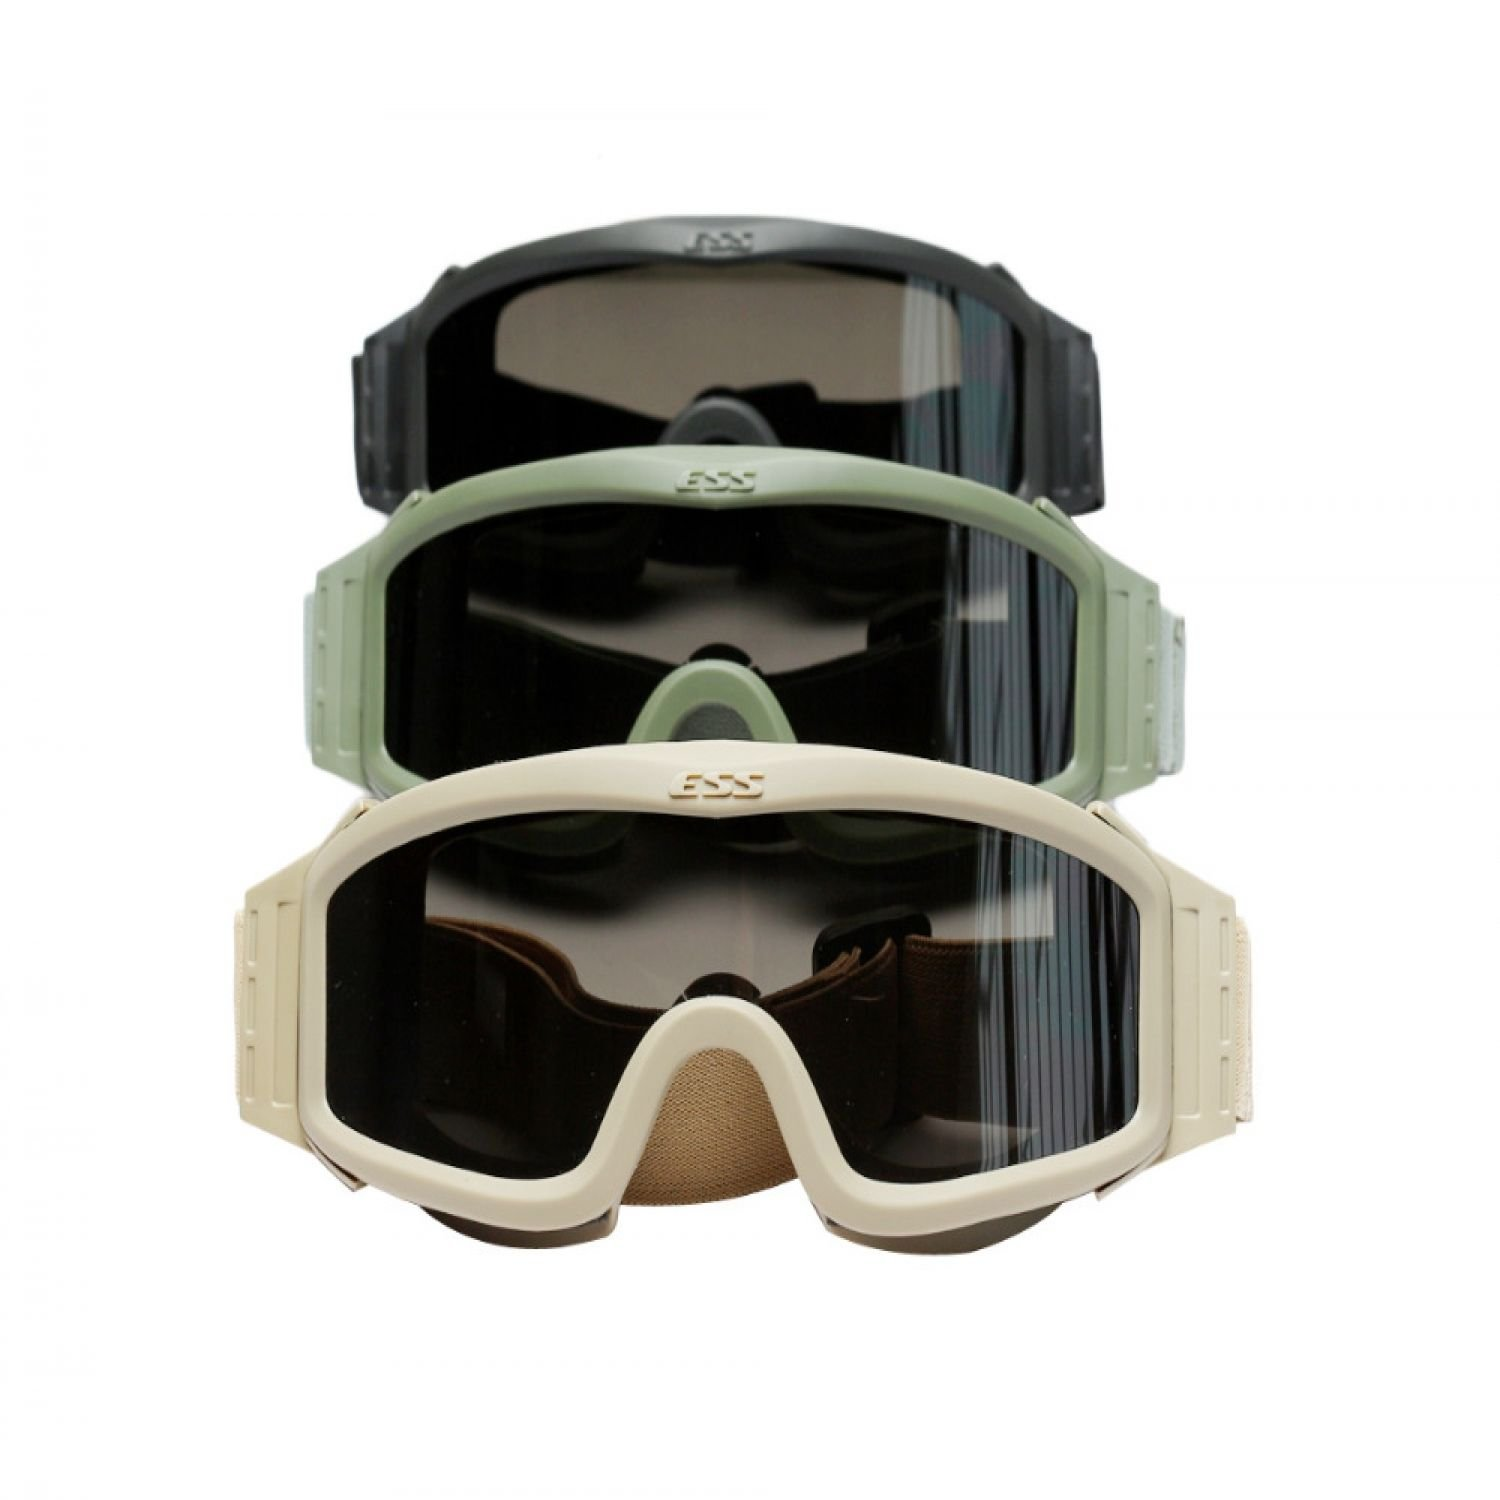 Goggles Outdoor Windproof Snowboard Skiing Eyewear ESS Men Tactical Glasses Snow